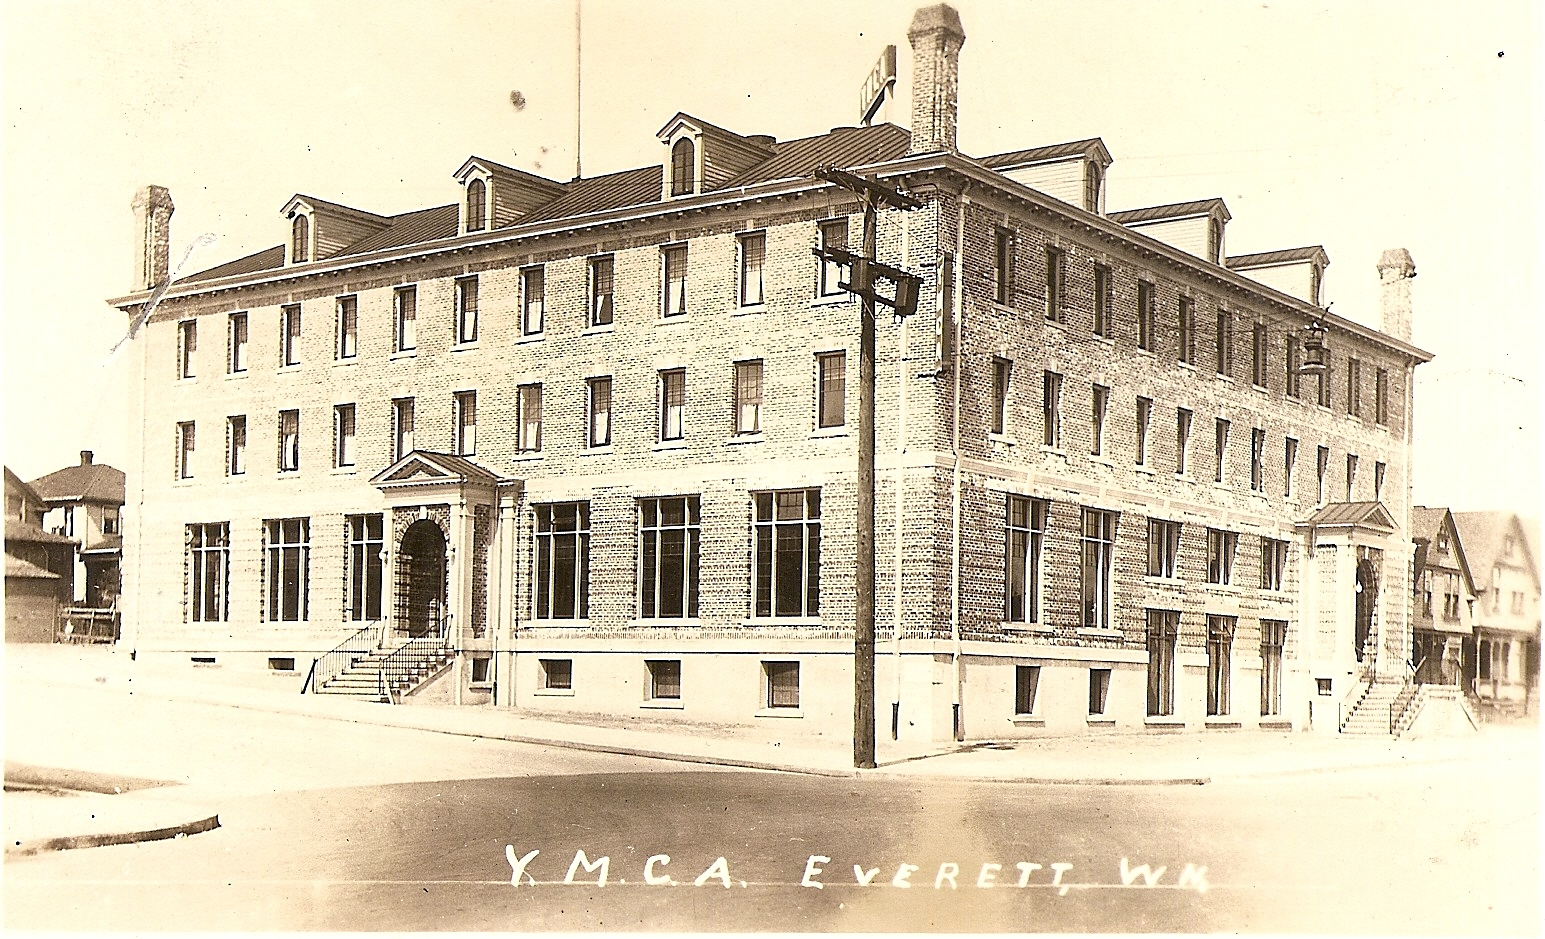 The exterior of the Everett YMCA